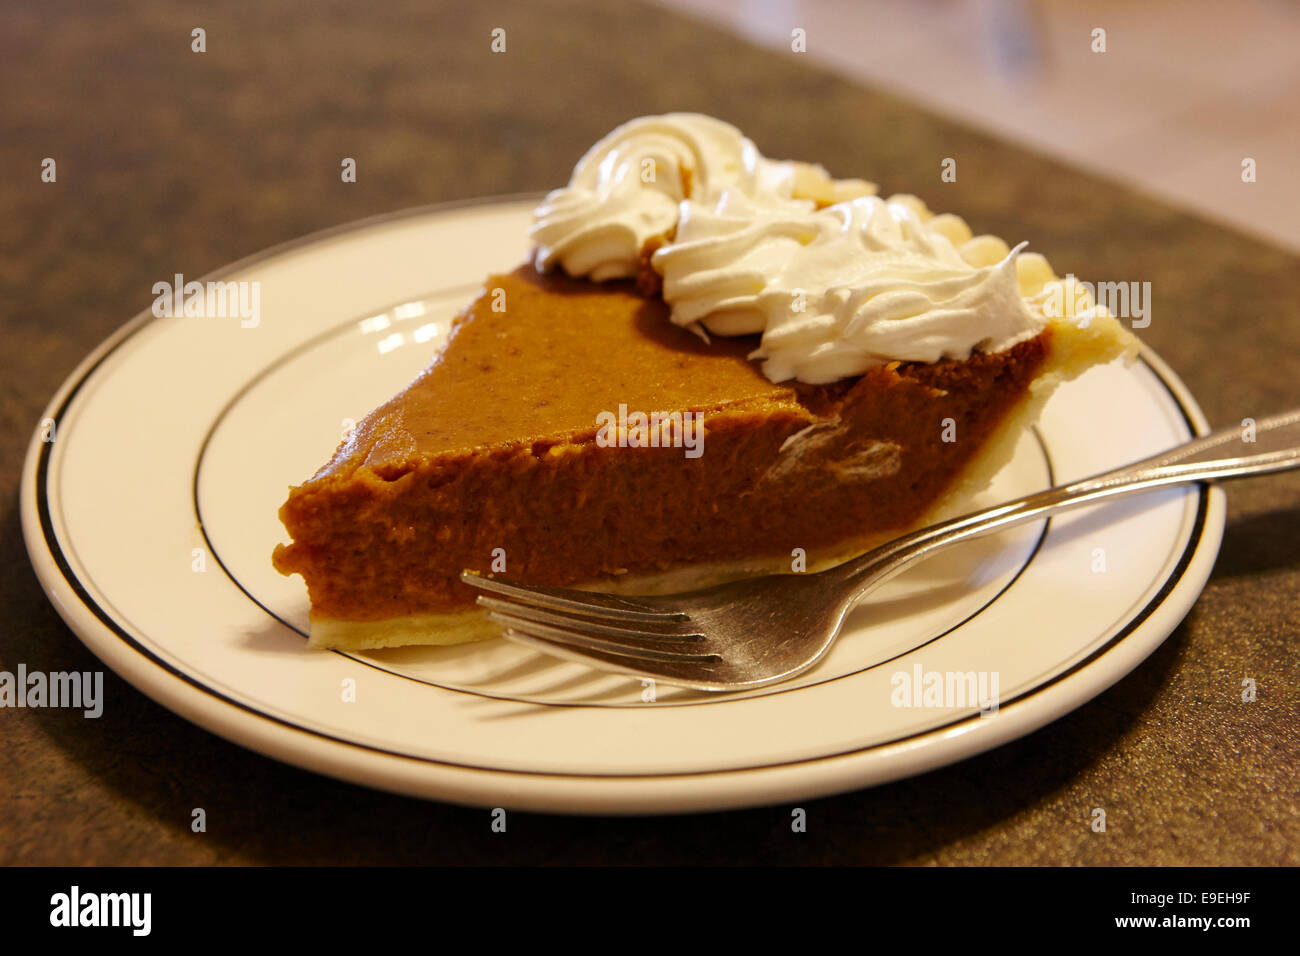 slice of mass produced pumpkin pie with cream in a cafe - Stock Image